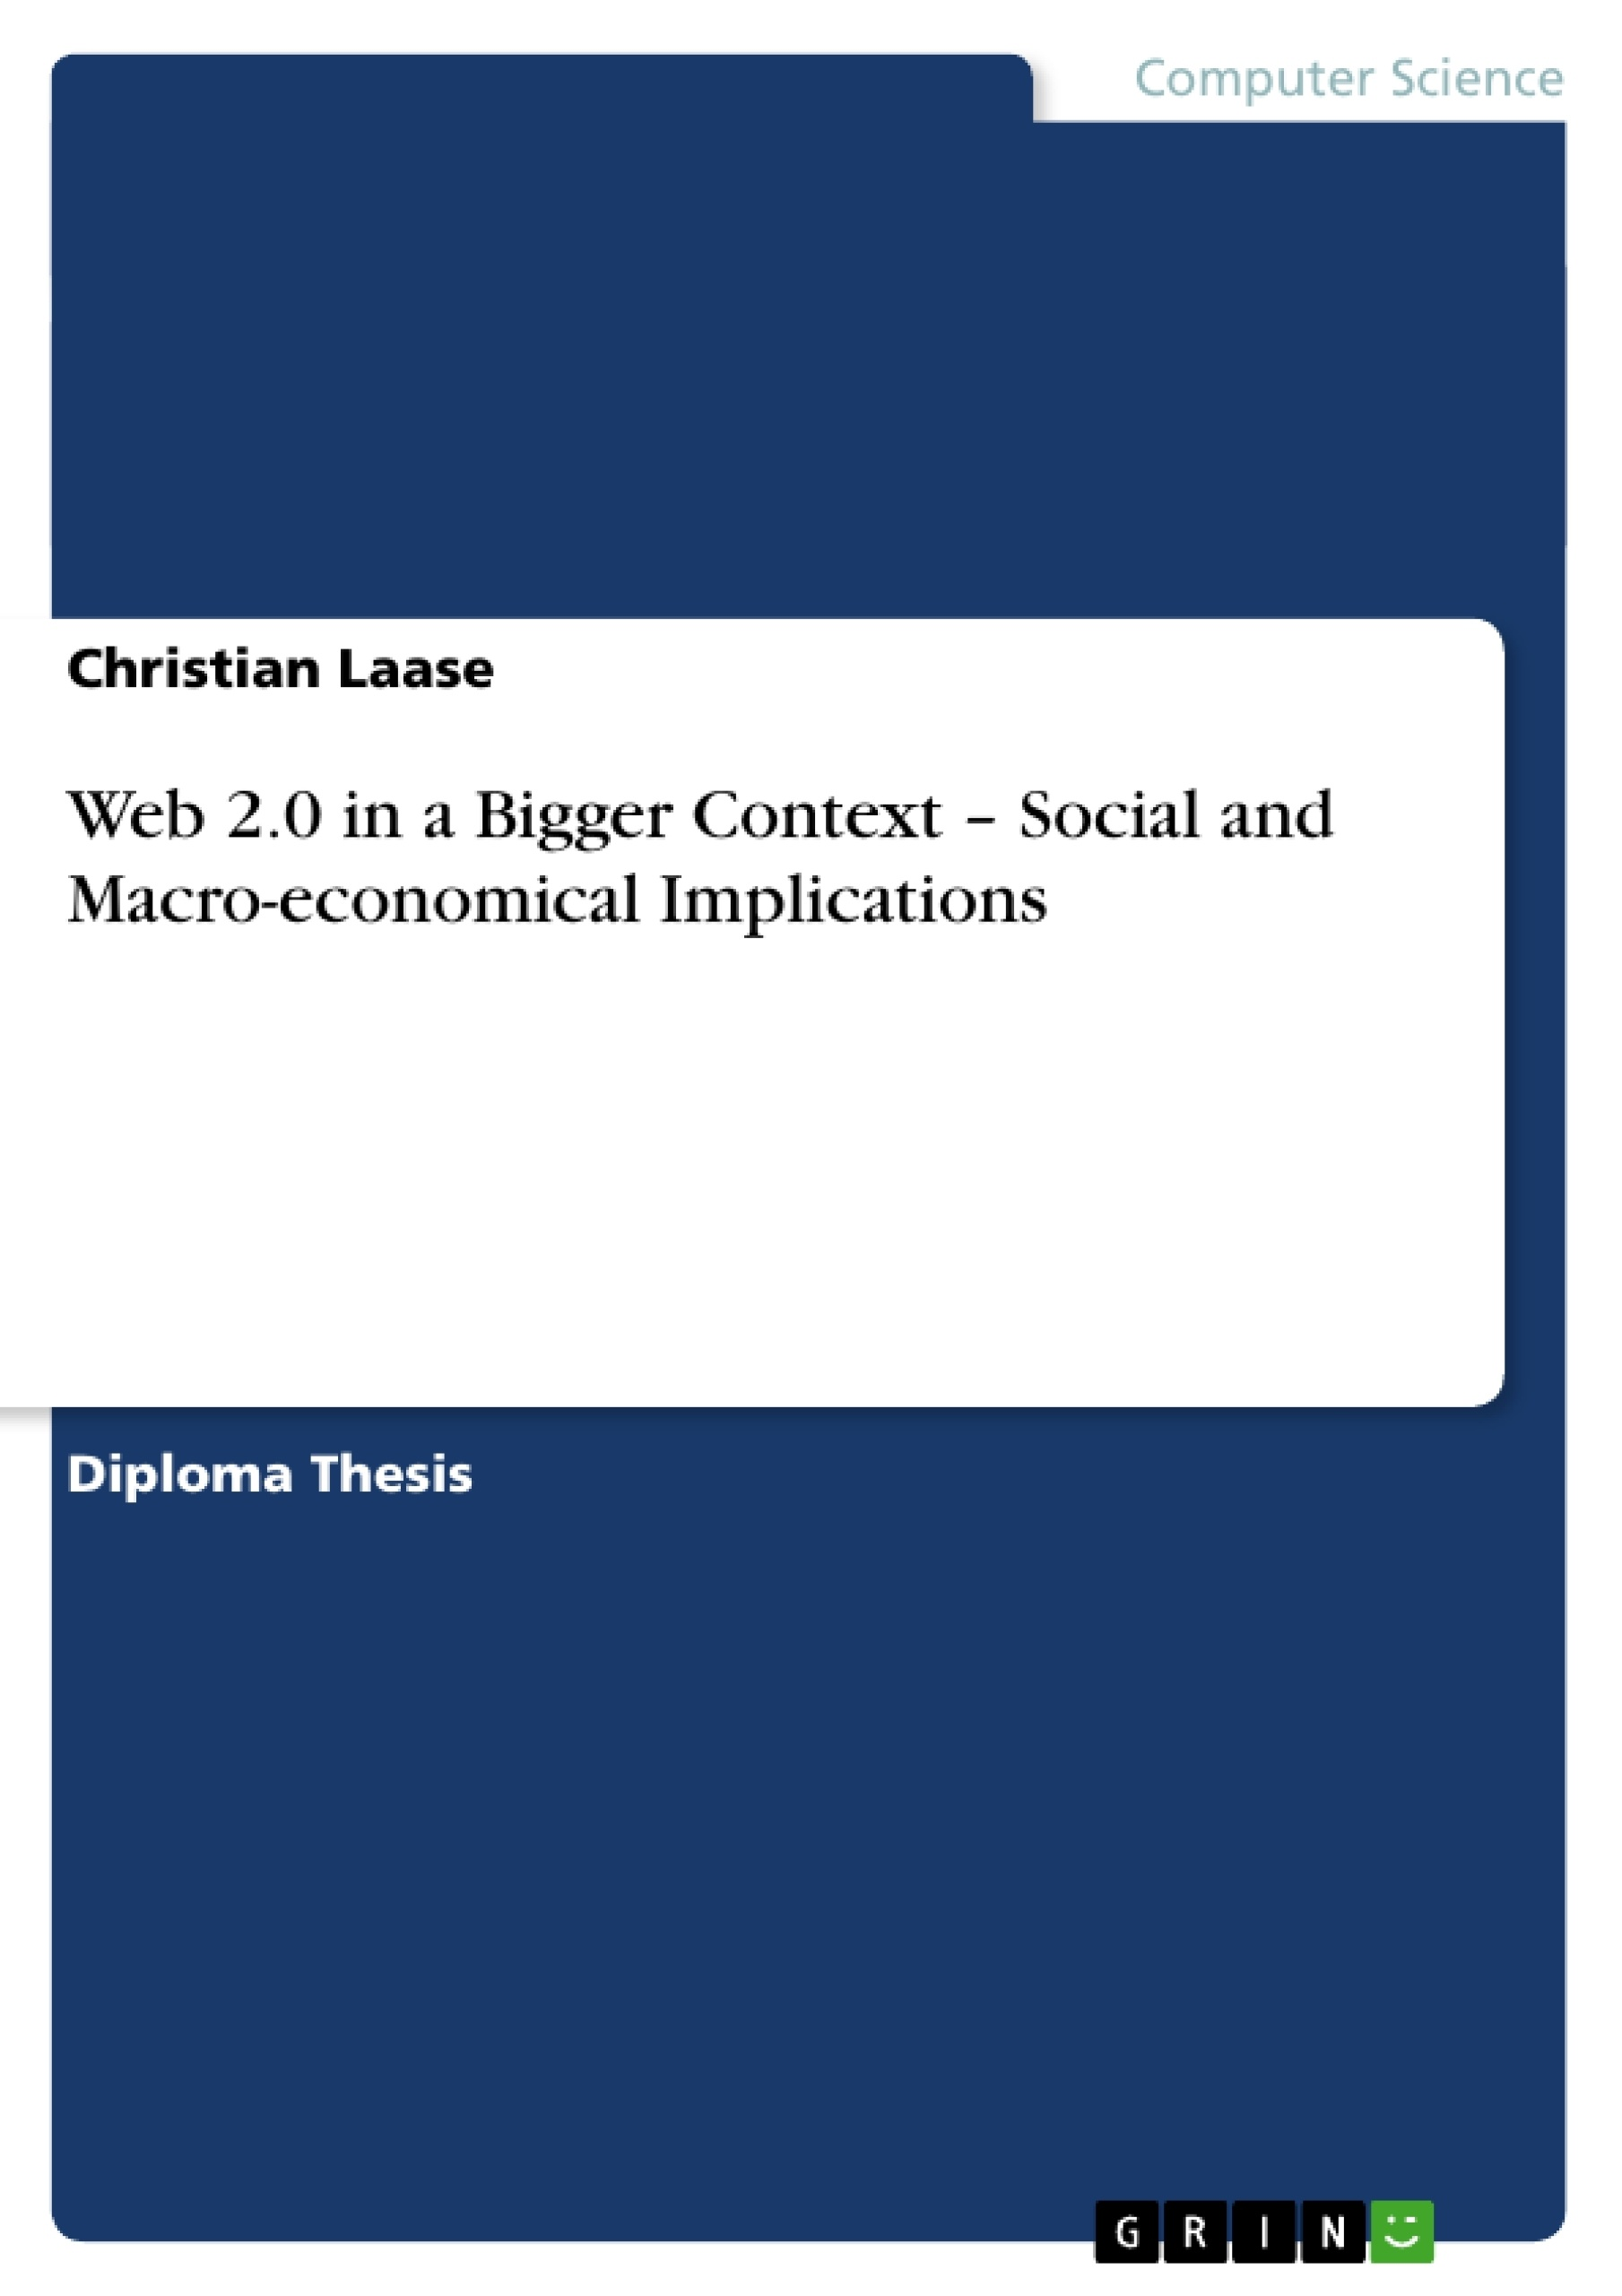 Title: Web 2.0 in a Bigger Context – Social and Macro-economical Implications